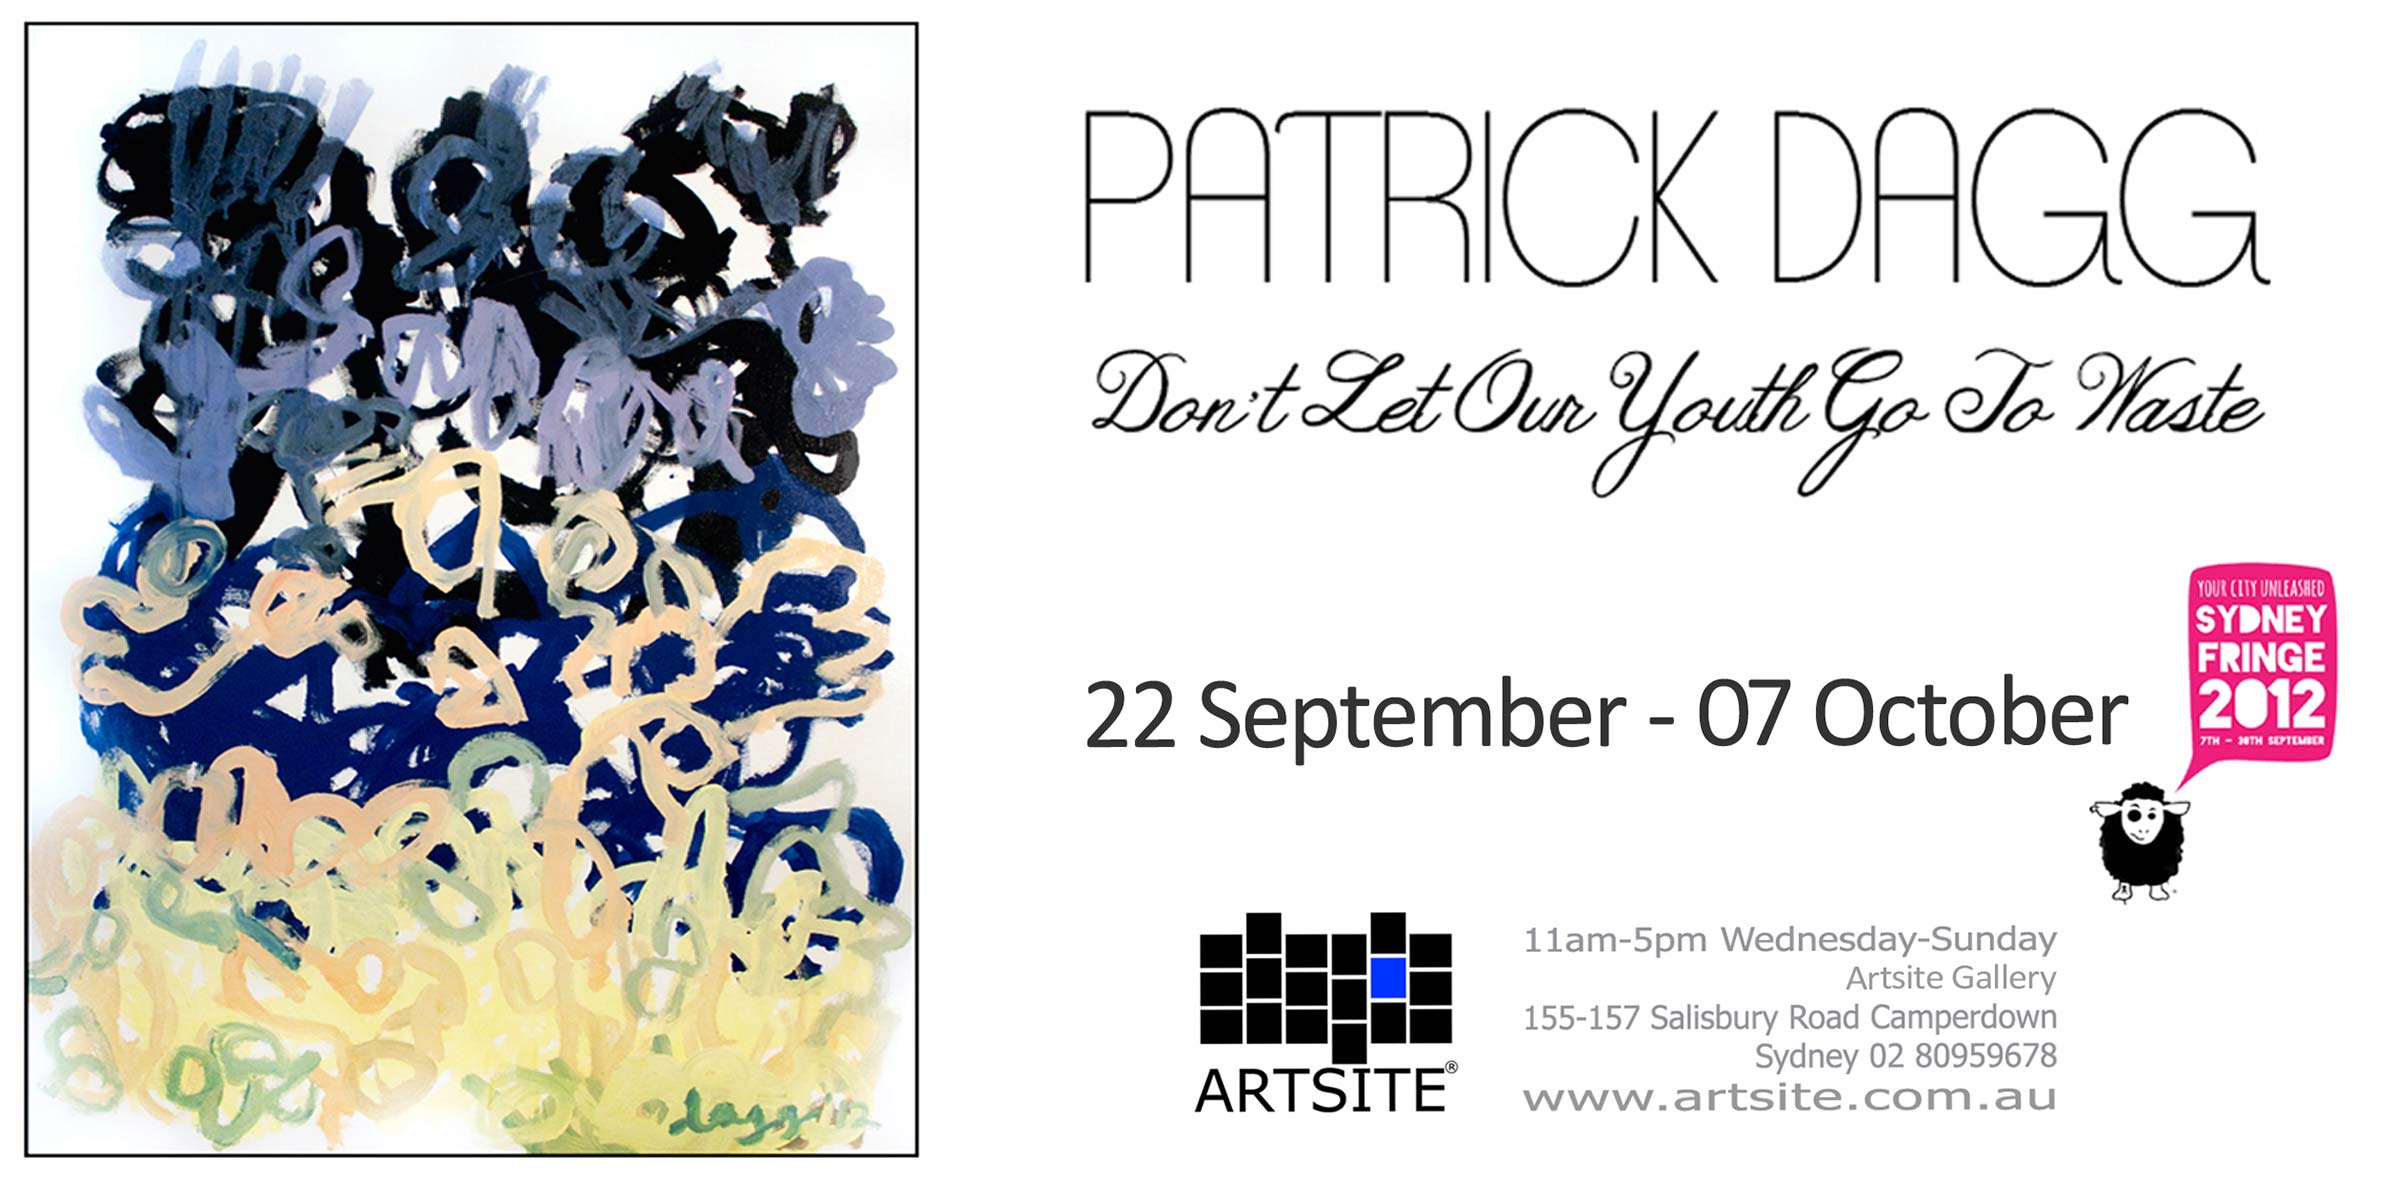 Patrick Dagg - Don't Let Our Youth Go To Waste. Artsite Gallery 22 September-07 October 2012.